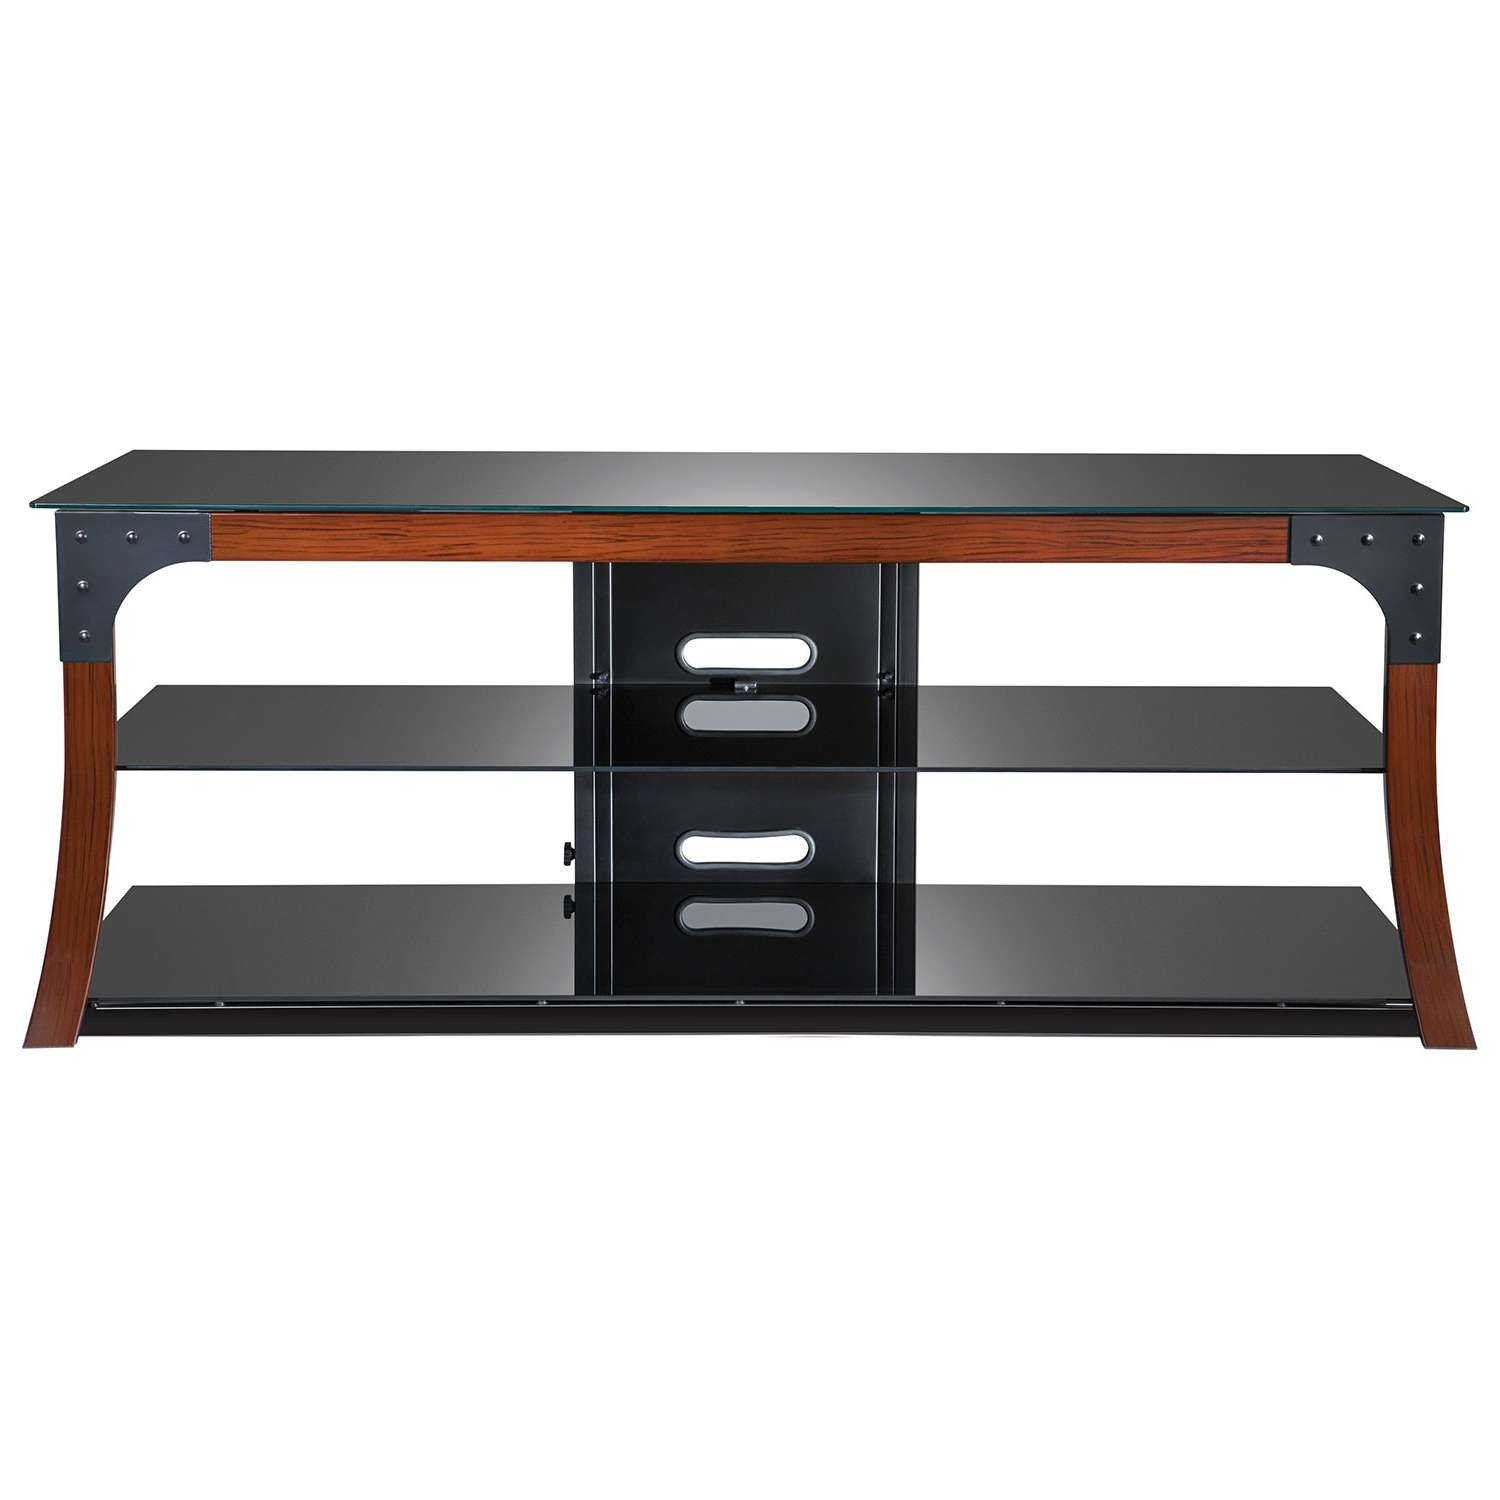 Tv Stands – Corner & Fireplace Tv Stands – Best Buy Canada Pertaining To Rustic 60 Inch Tv Stands (View 11 of 15)